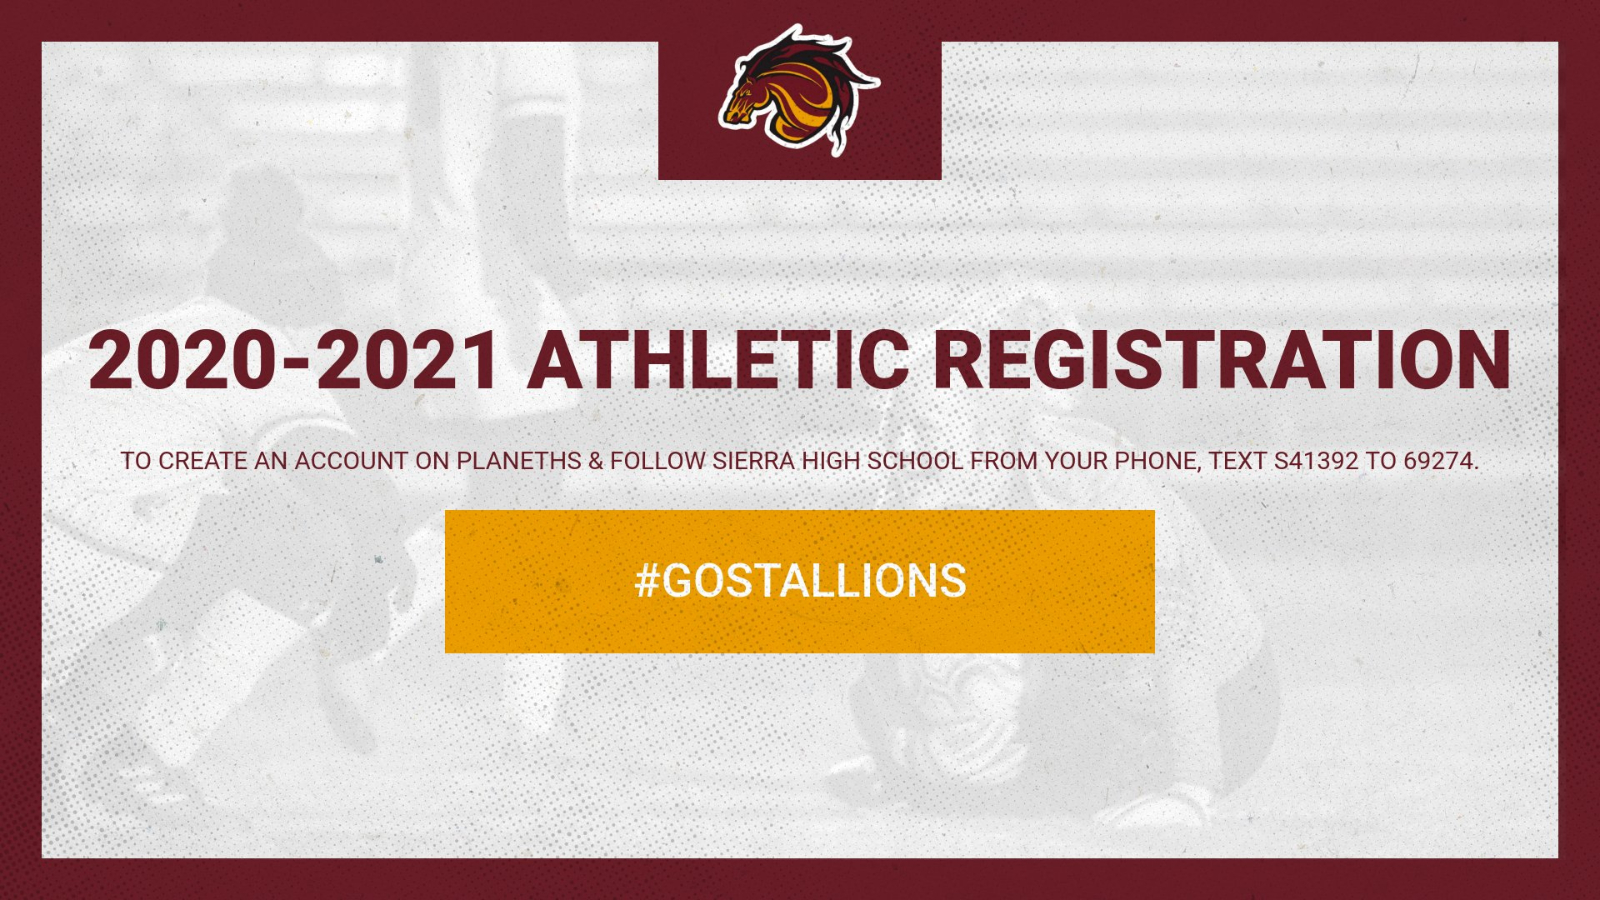 Online Athletic Registration for the 2020-2021 School Year